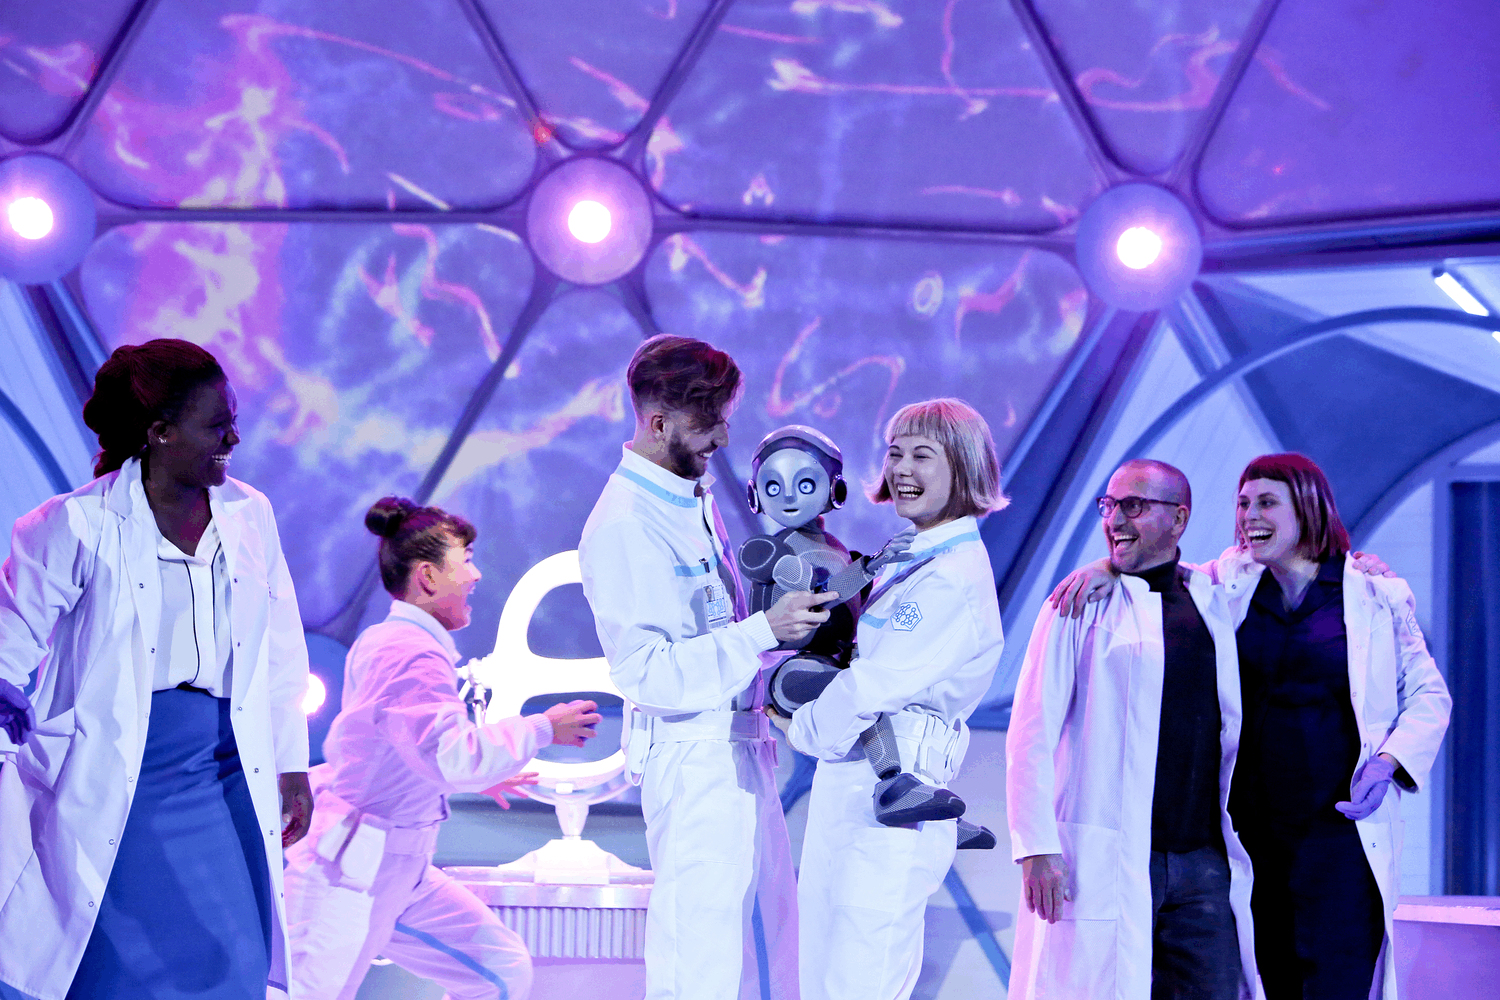 Two laboratory technicians (puppeteers) hold Robot Boy tightly as 4 scientists celebrate that Robot Boy is alive